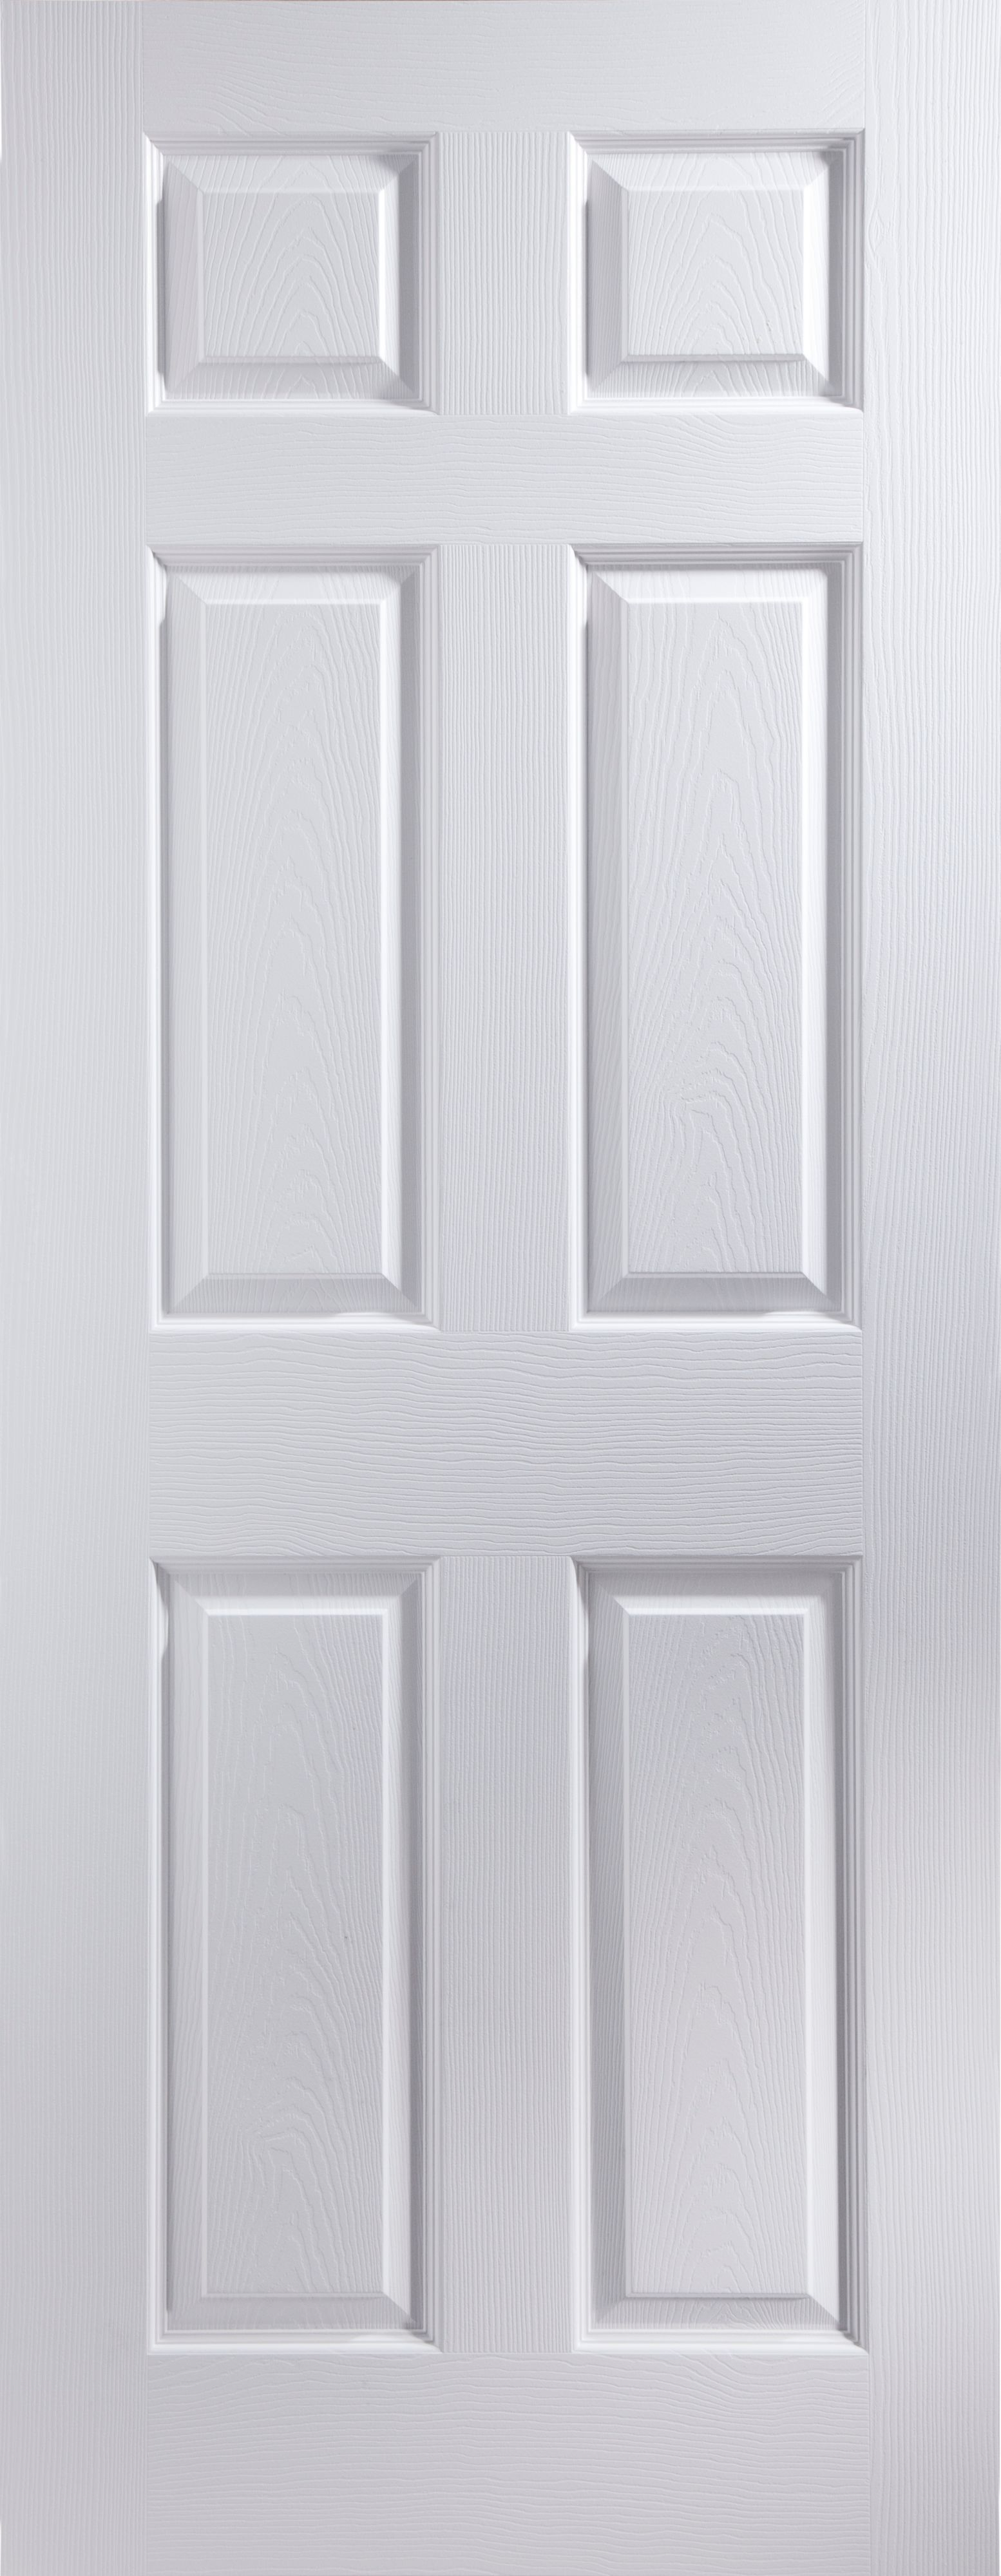 6 Panel Pre-Painted White Woodgrain Unglazed Internal Standard Door (H)1981mm (W)762mm | Departments | DIY at B\u0026Q  sc 1 st  B\u0026Q & 6 Panel Pre-Painted White Woodgrain Unglazed Internal Standard ...